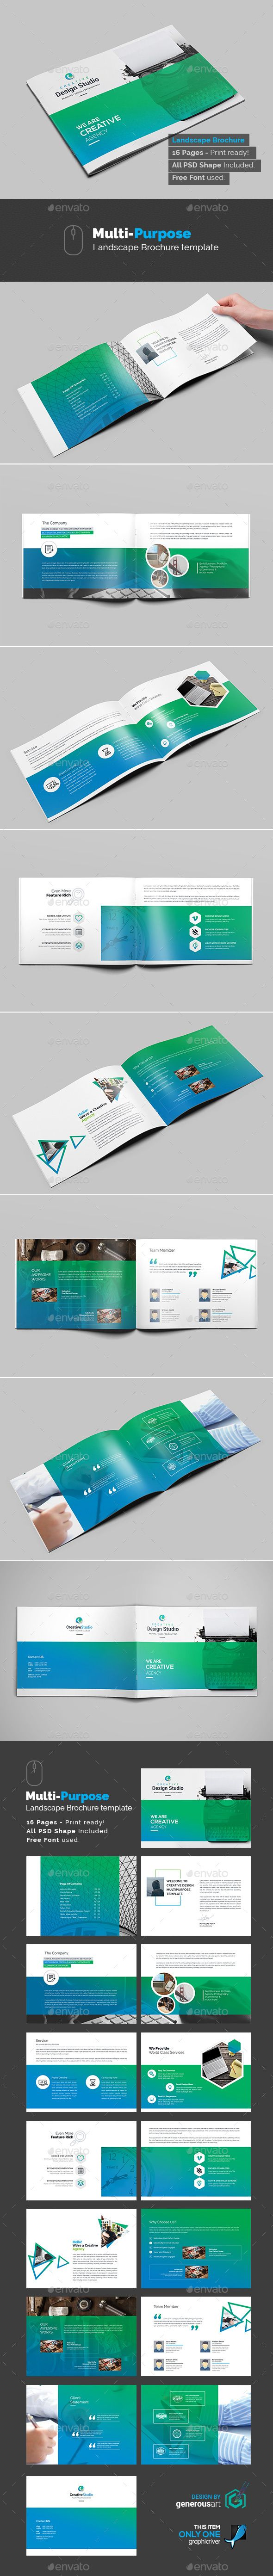 Multi-Purpose Agency Landscape Brochure Template PSD